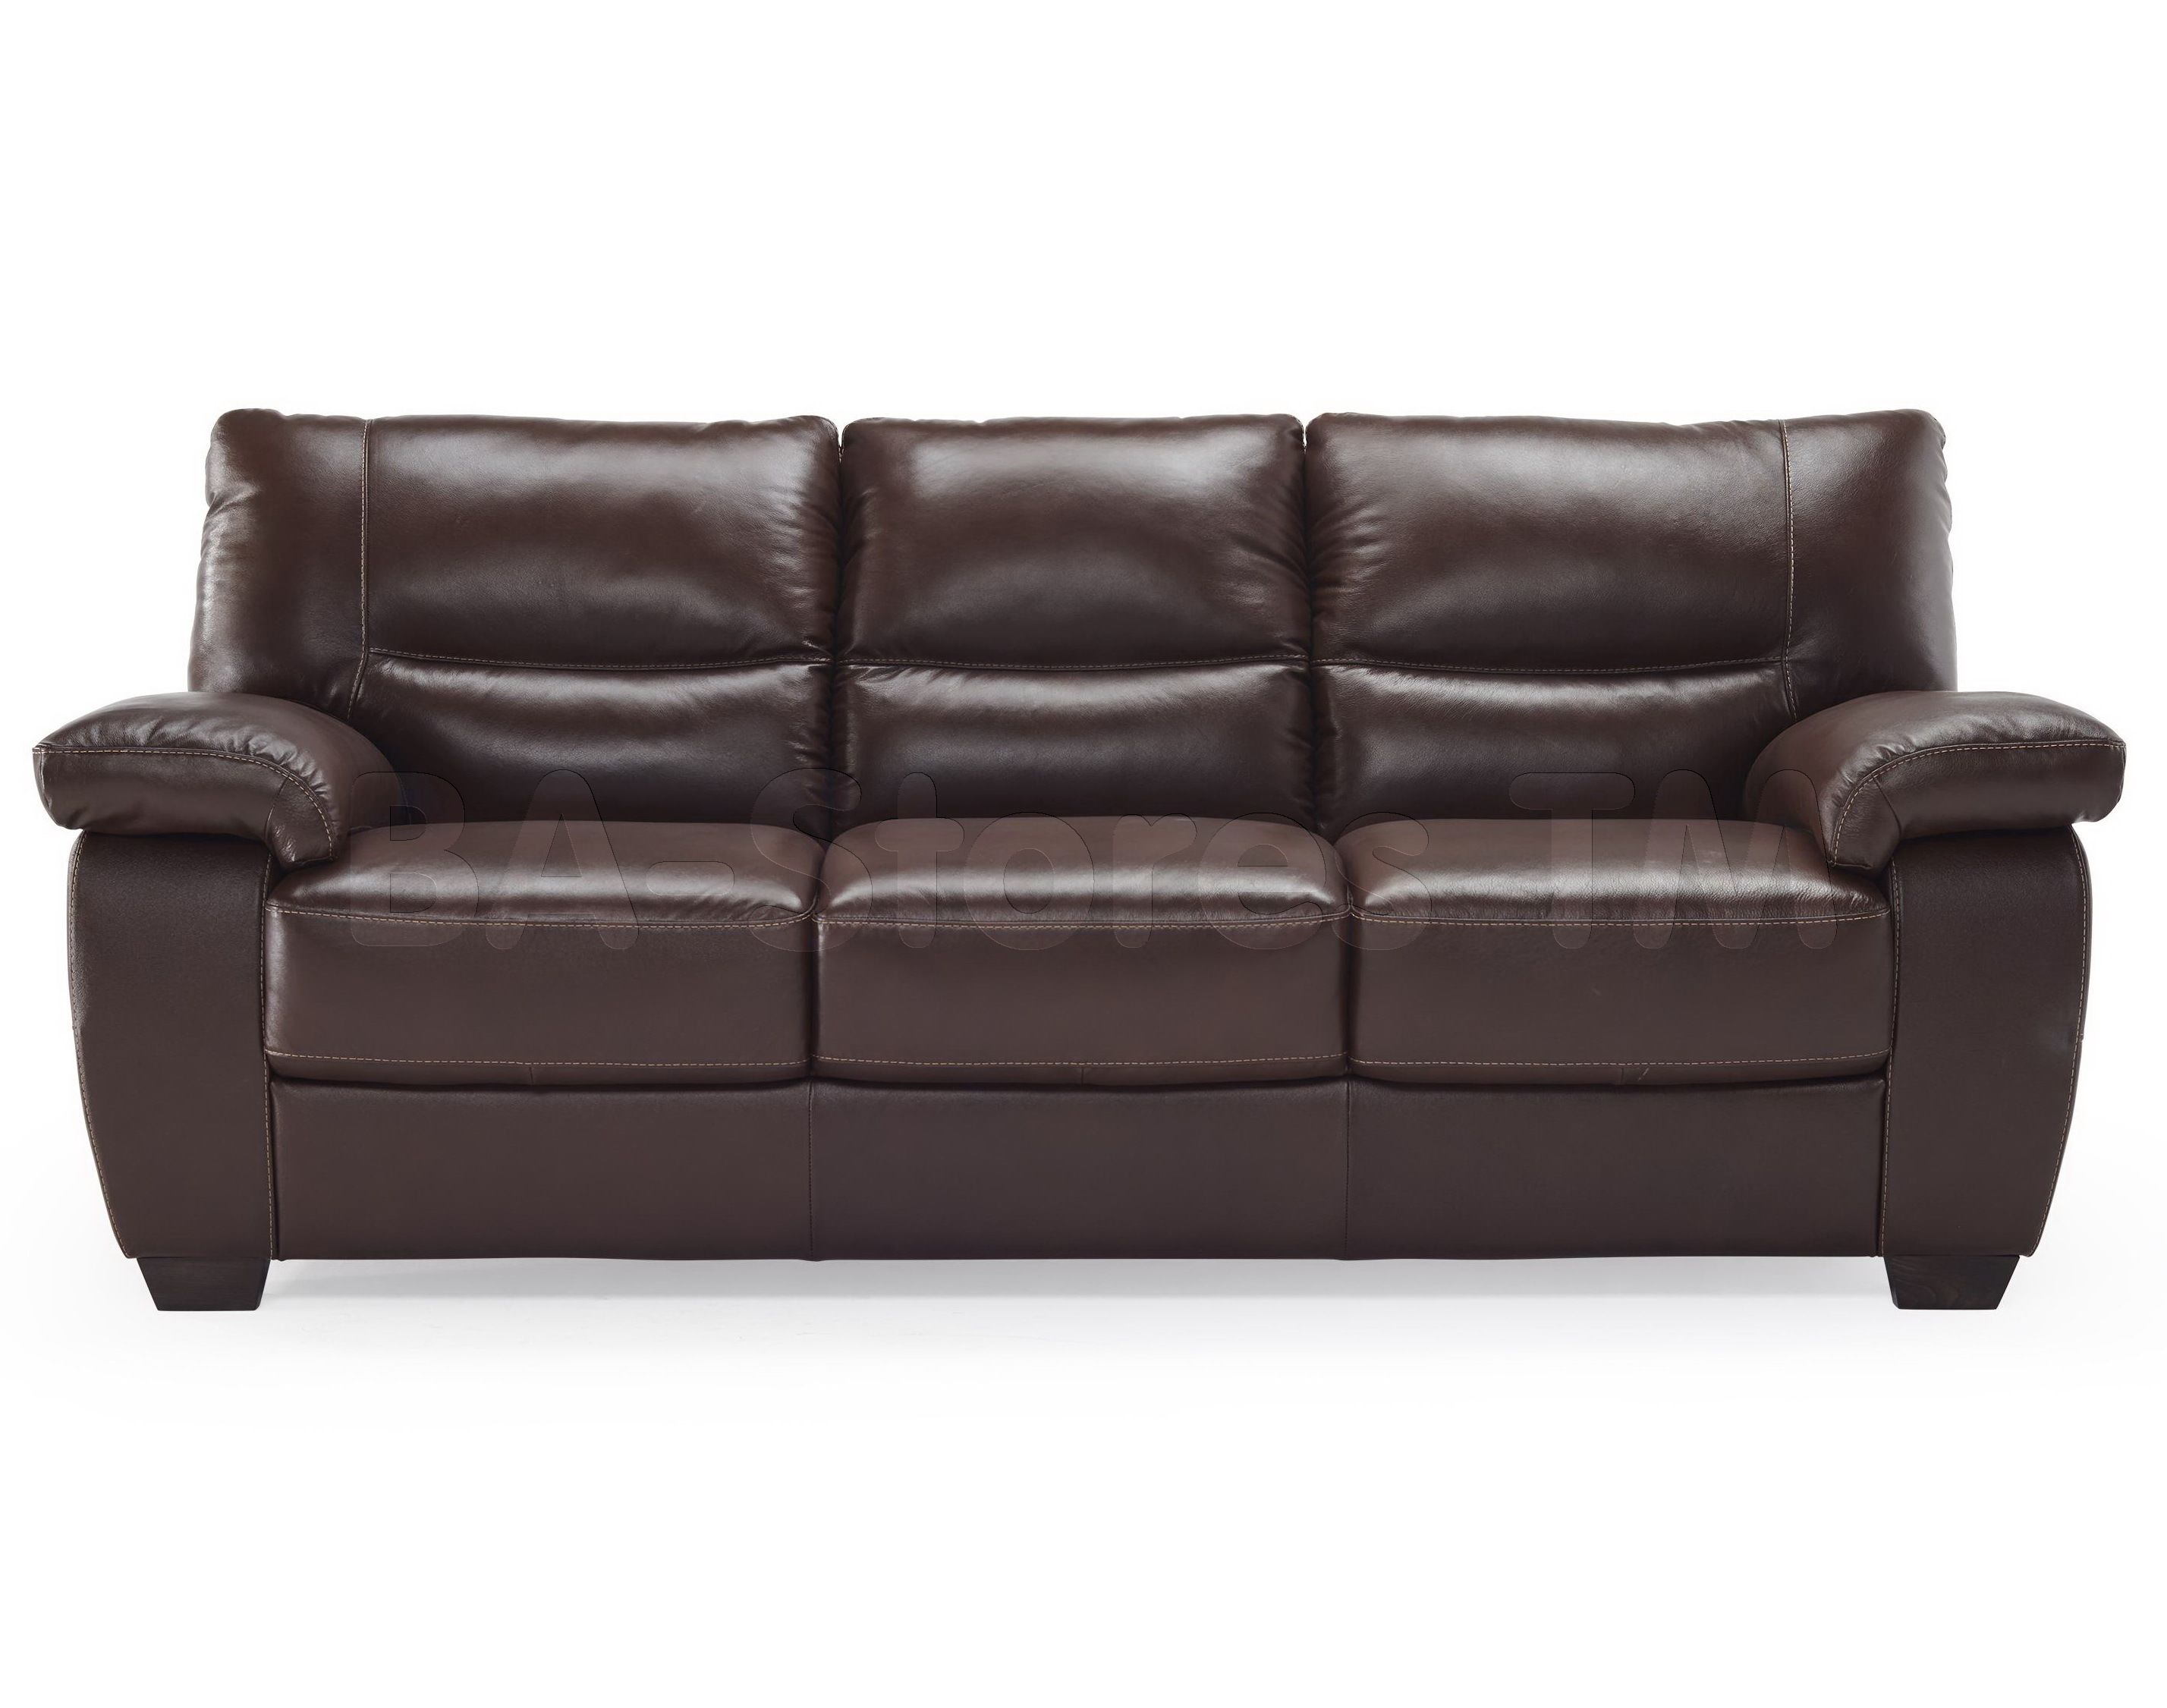 Leather Editions Roma B692 Leather Edition Sofas